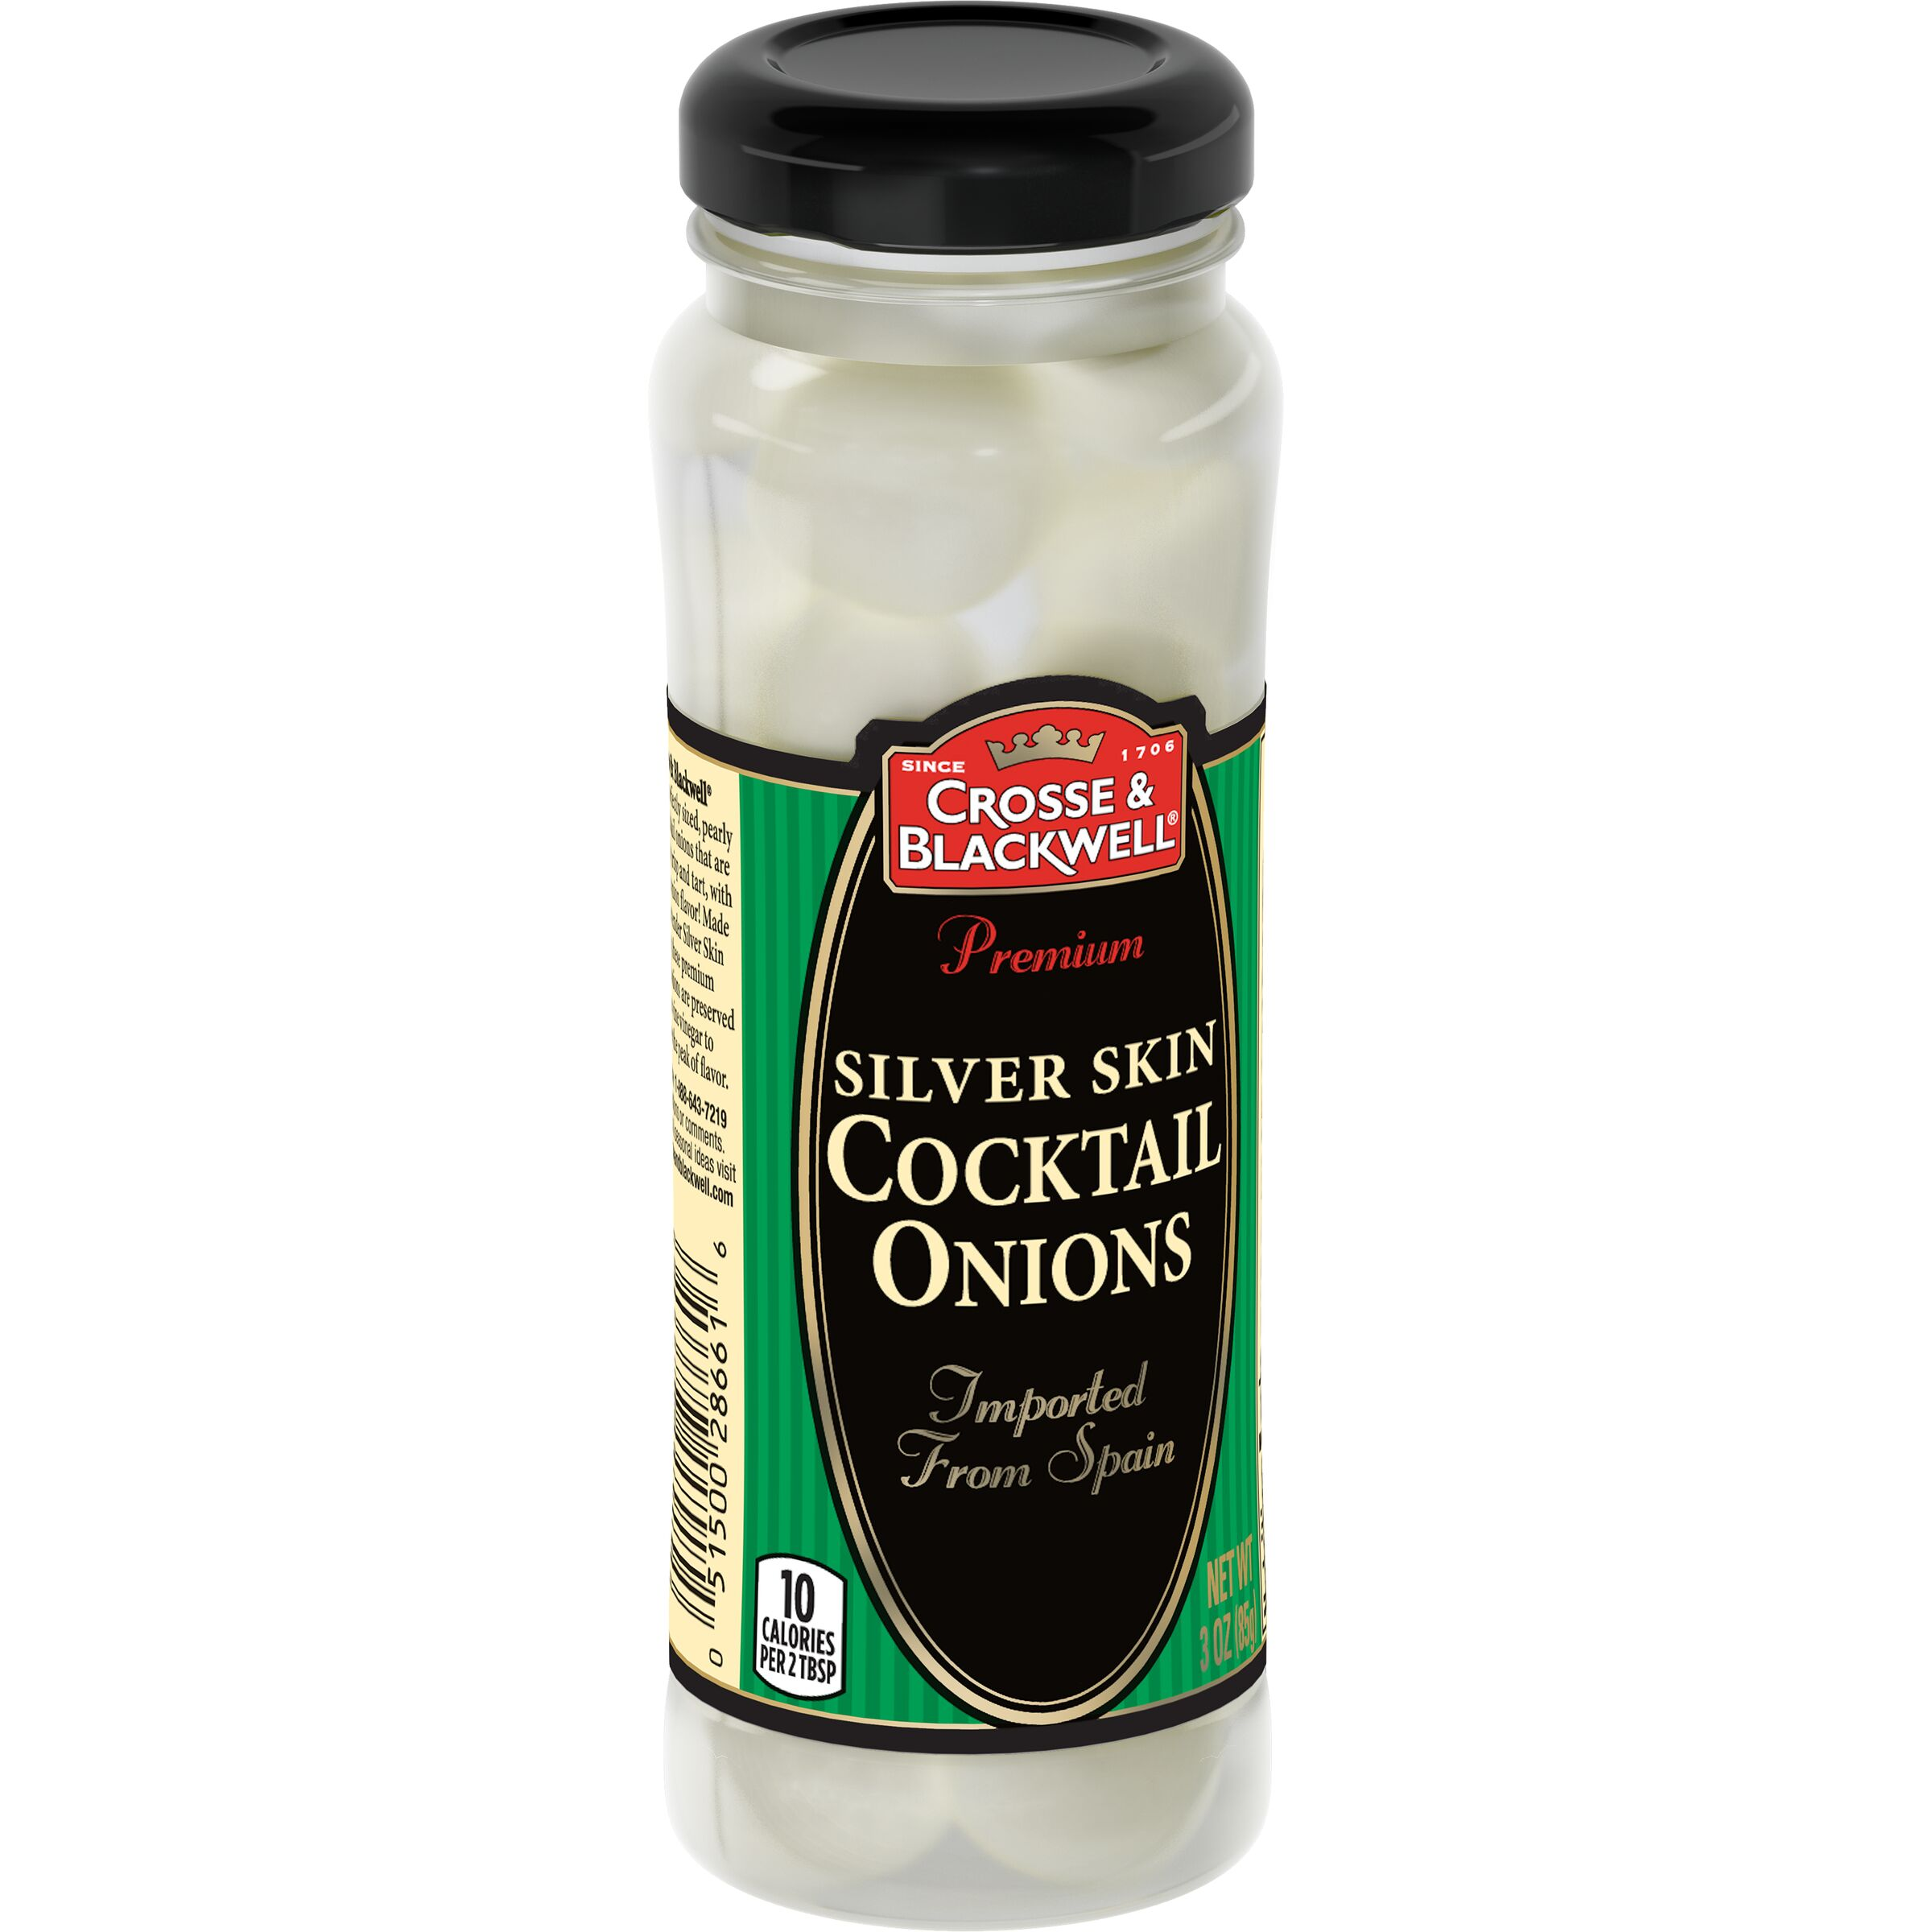 Crosse & Blackwell  Premium Silver Skin Cocktail Onions